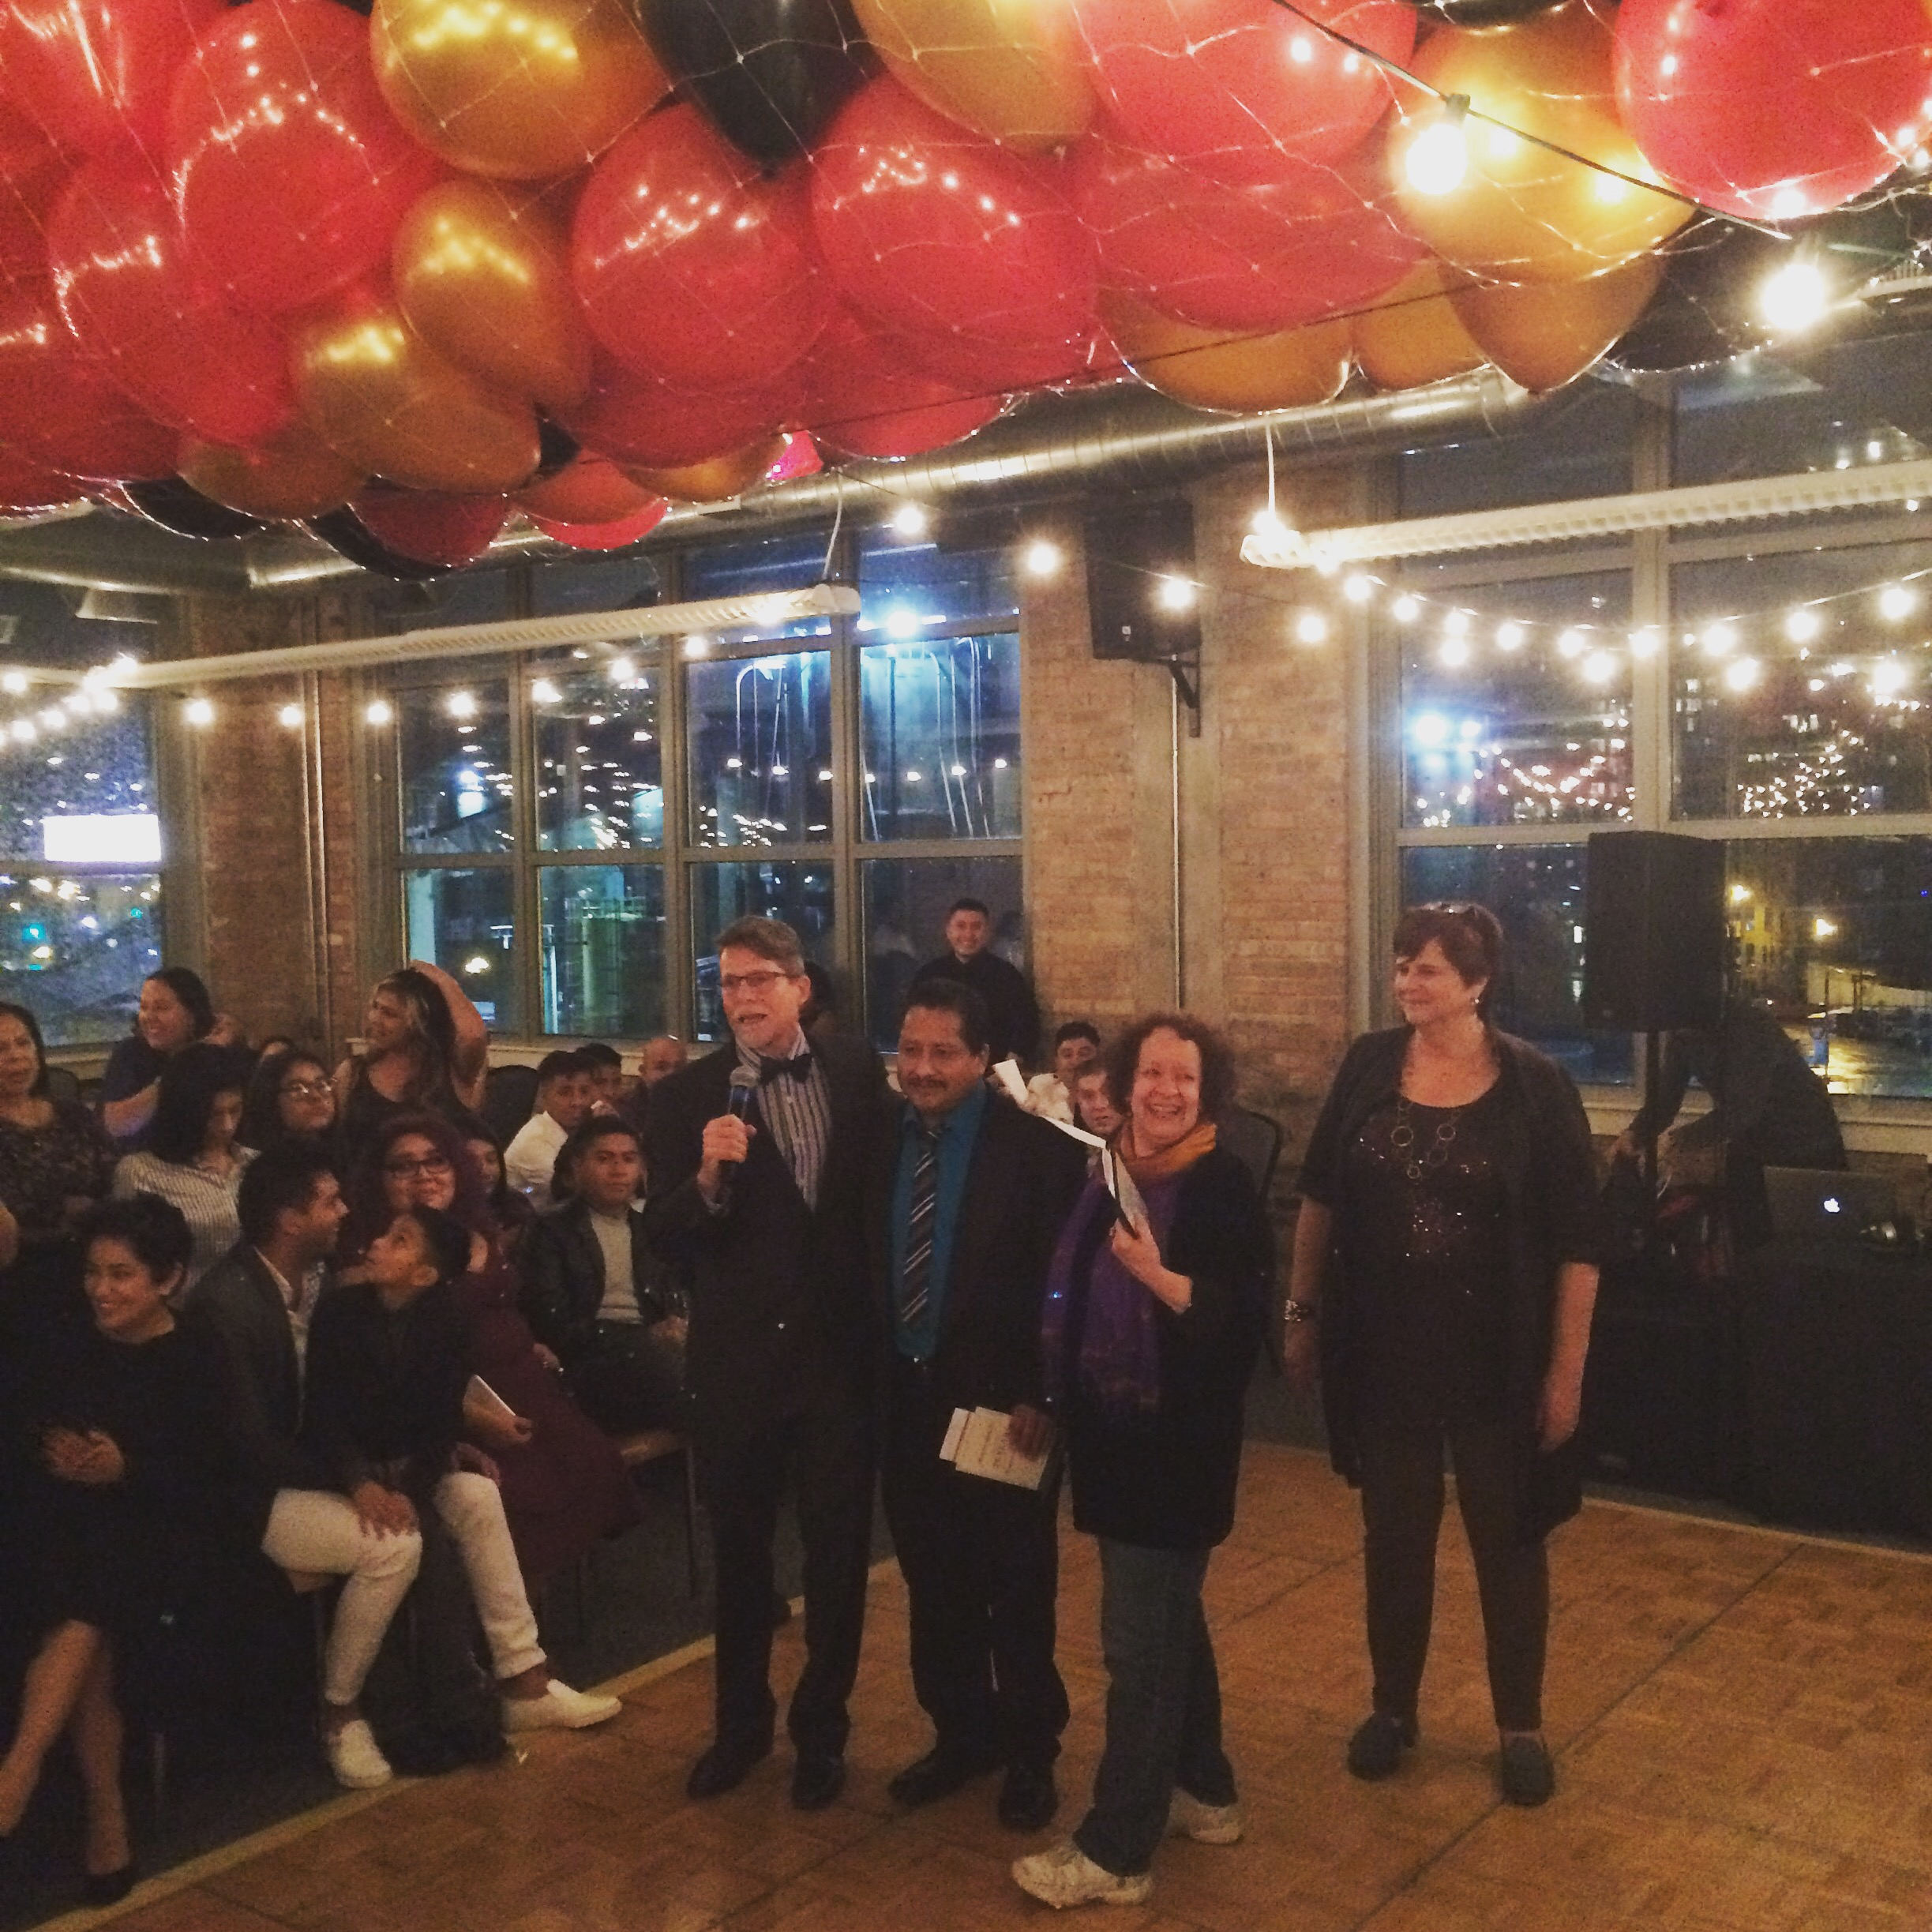 3rdarm arthur mullen chicago xoco holiday party casey cora roly poly cat dawn sunrise